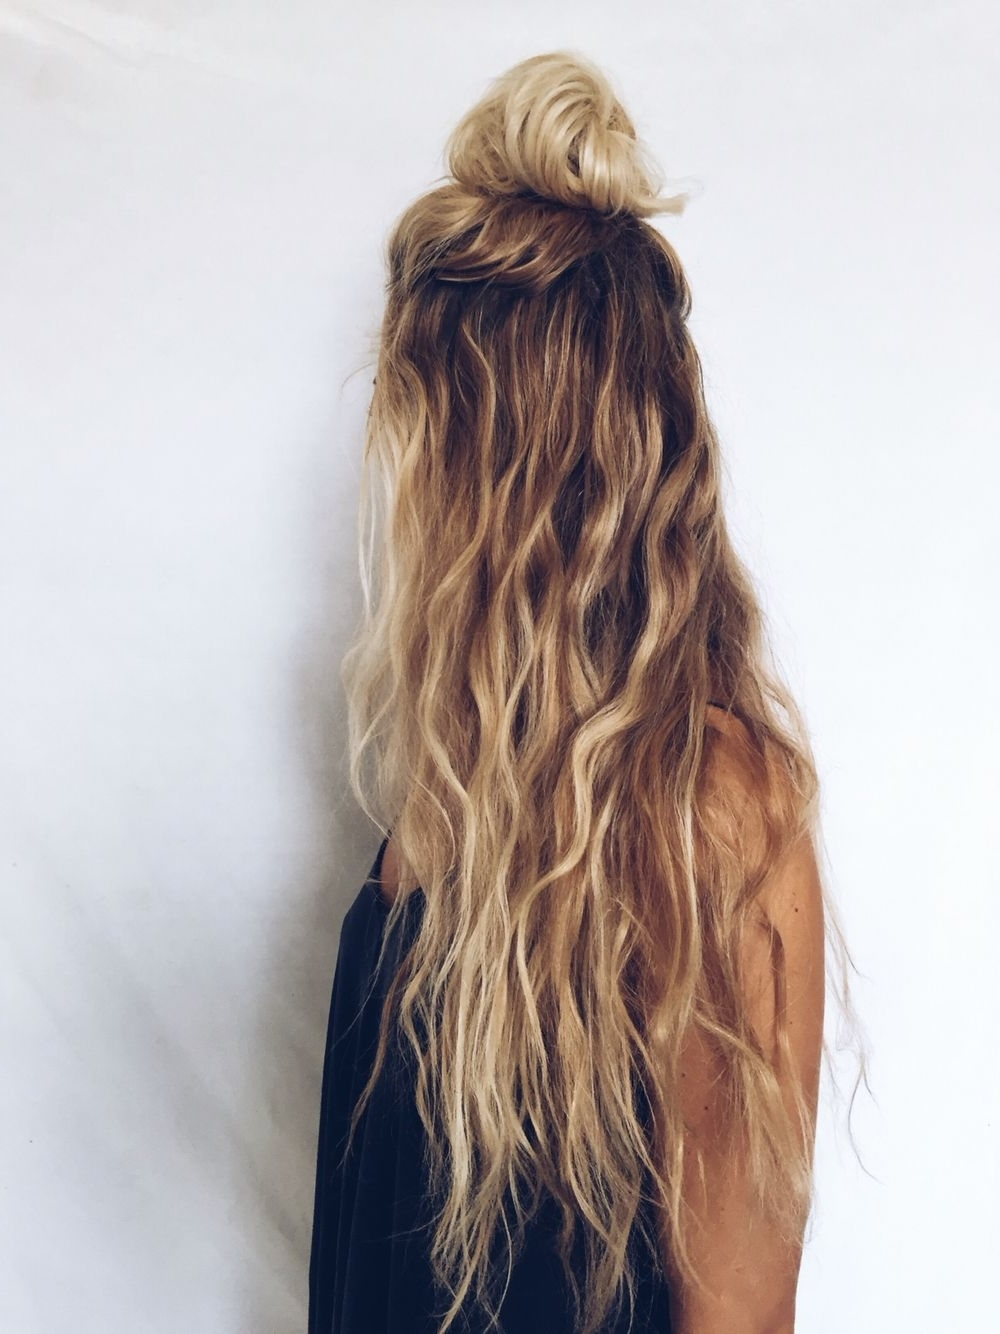 Most Recent Ponytail Hairstyles With Wild Wavy Ombre Pertaining To Long Hair, Blonde, Curly Wavy, Natural Kcdoubletake (Gallery 2 of 20)